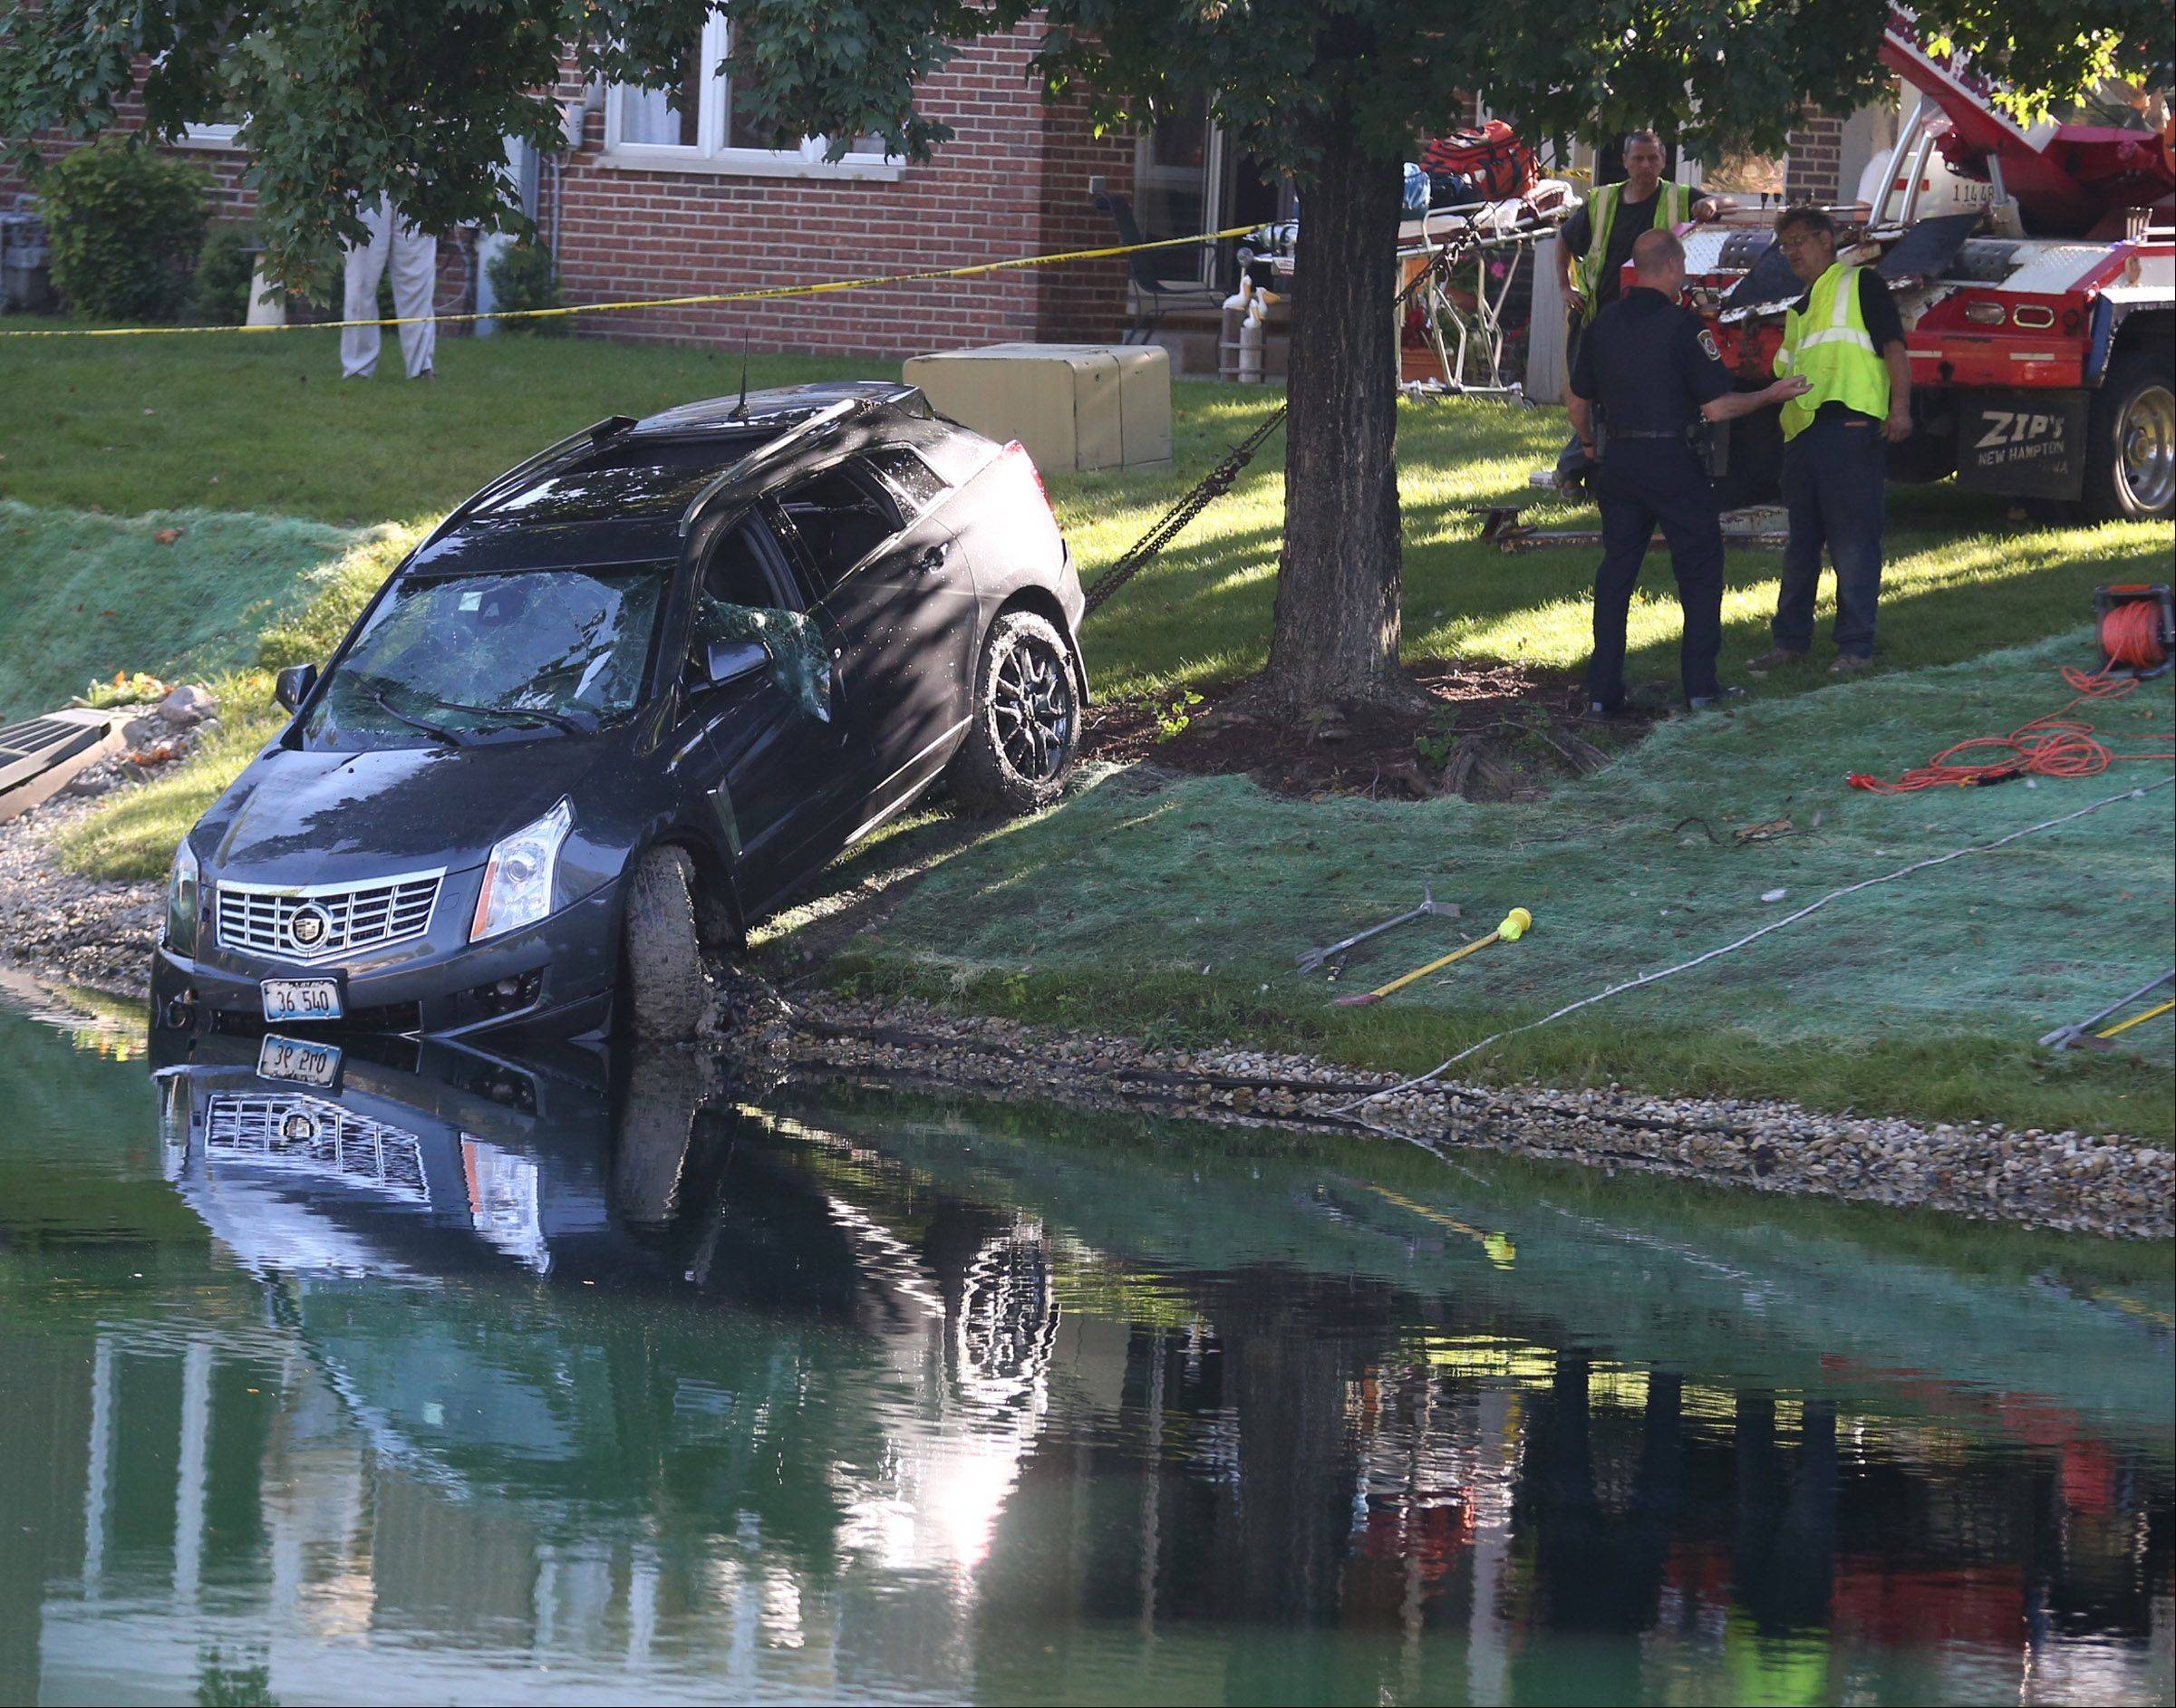 Neighbors dive in but can't rescue man who drove into Arlington Hts. pond